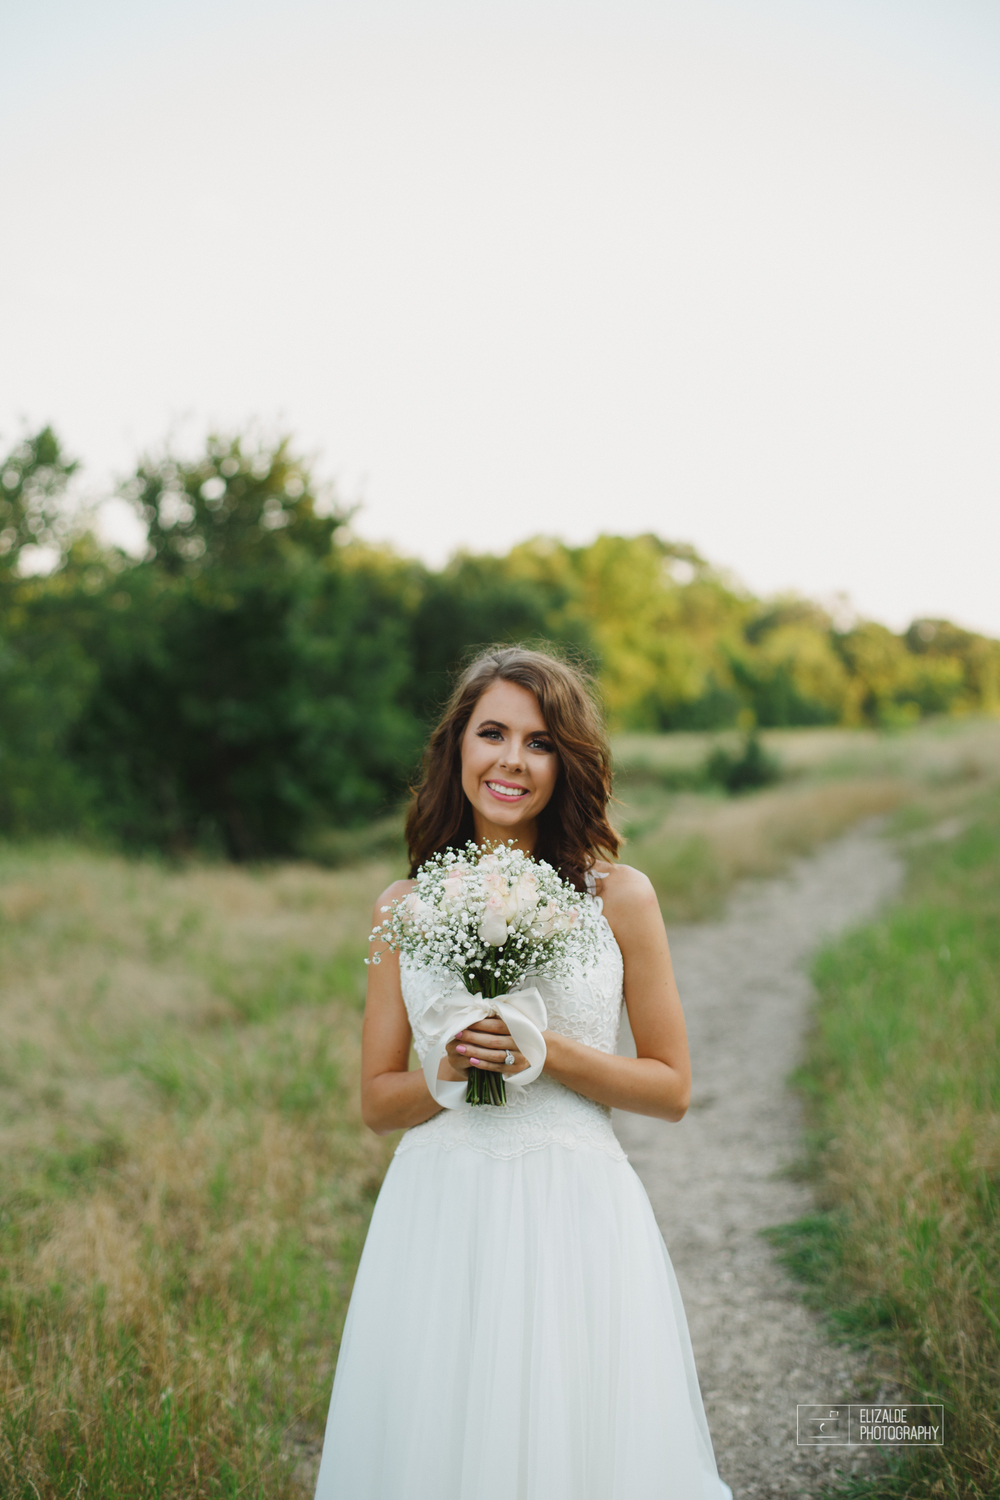 Bridal session_Dallas Photographer_Elizalde Photography_Denton photographer_ DFW Photographer_ Wedding Photographer_Baleigh15.jpg